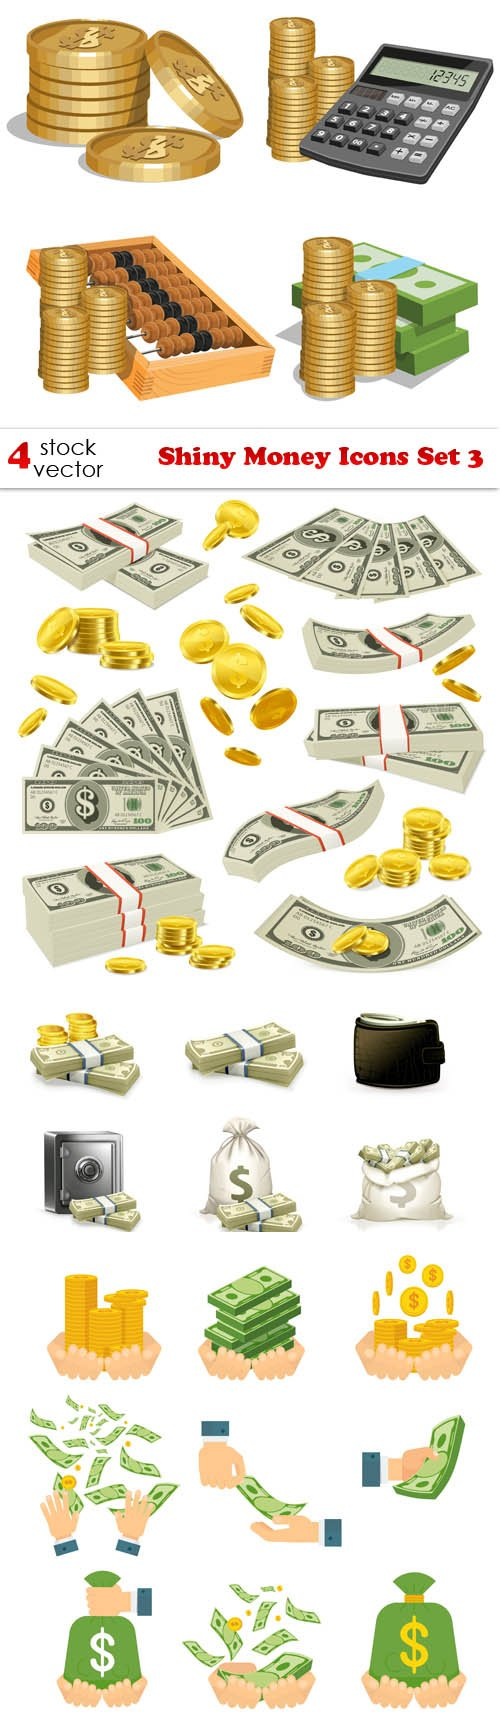 Vectors - Shiny Money Icons Set 3